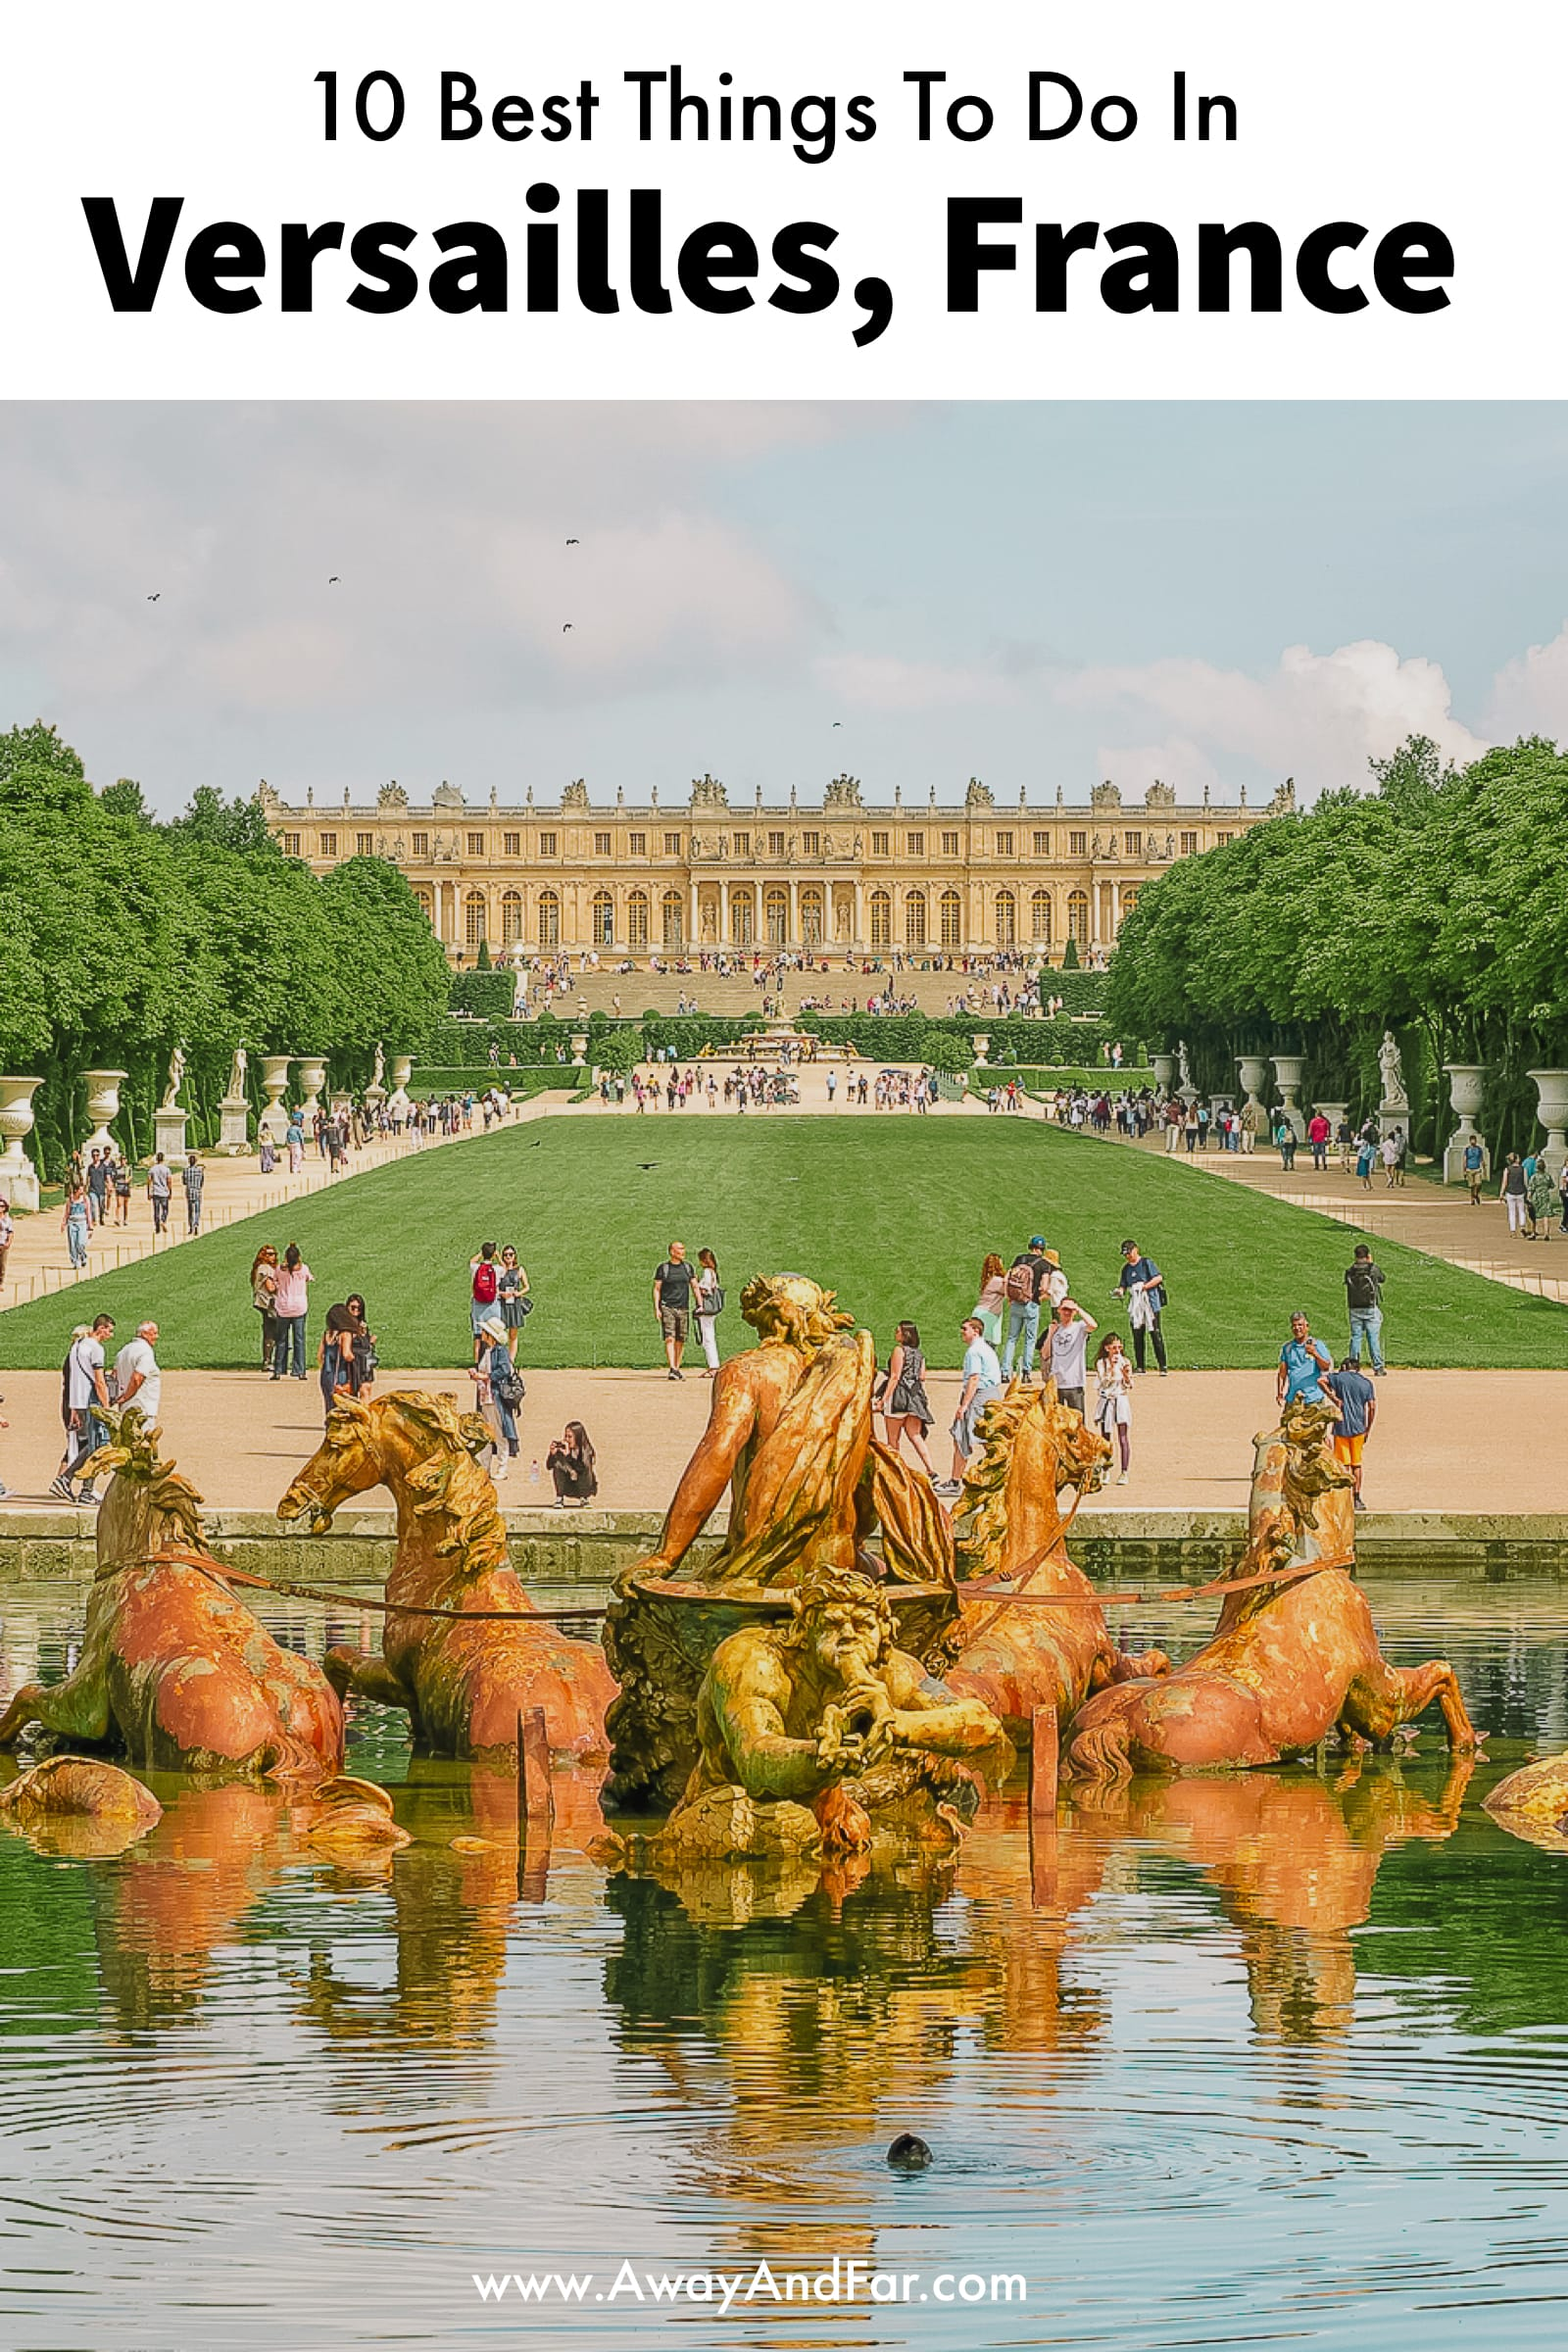 10 Best Things To Do In Versailles, France (1)